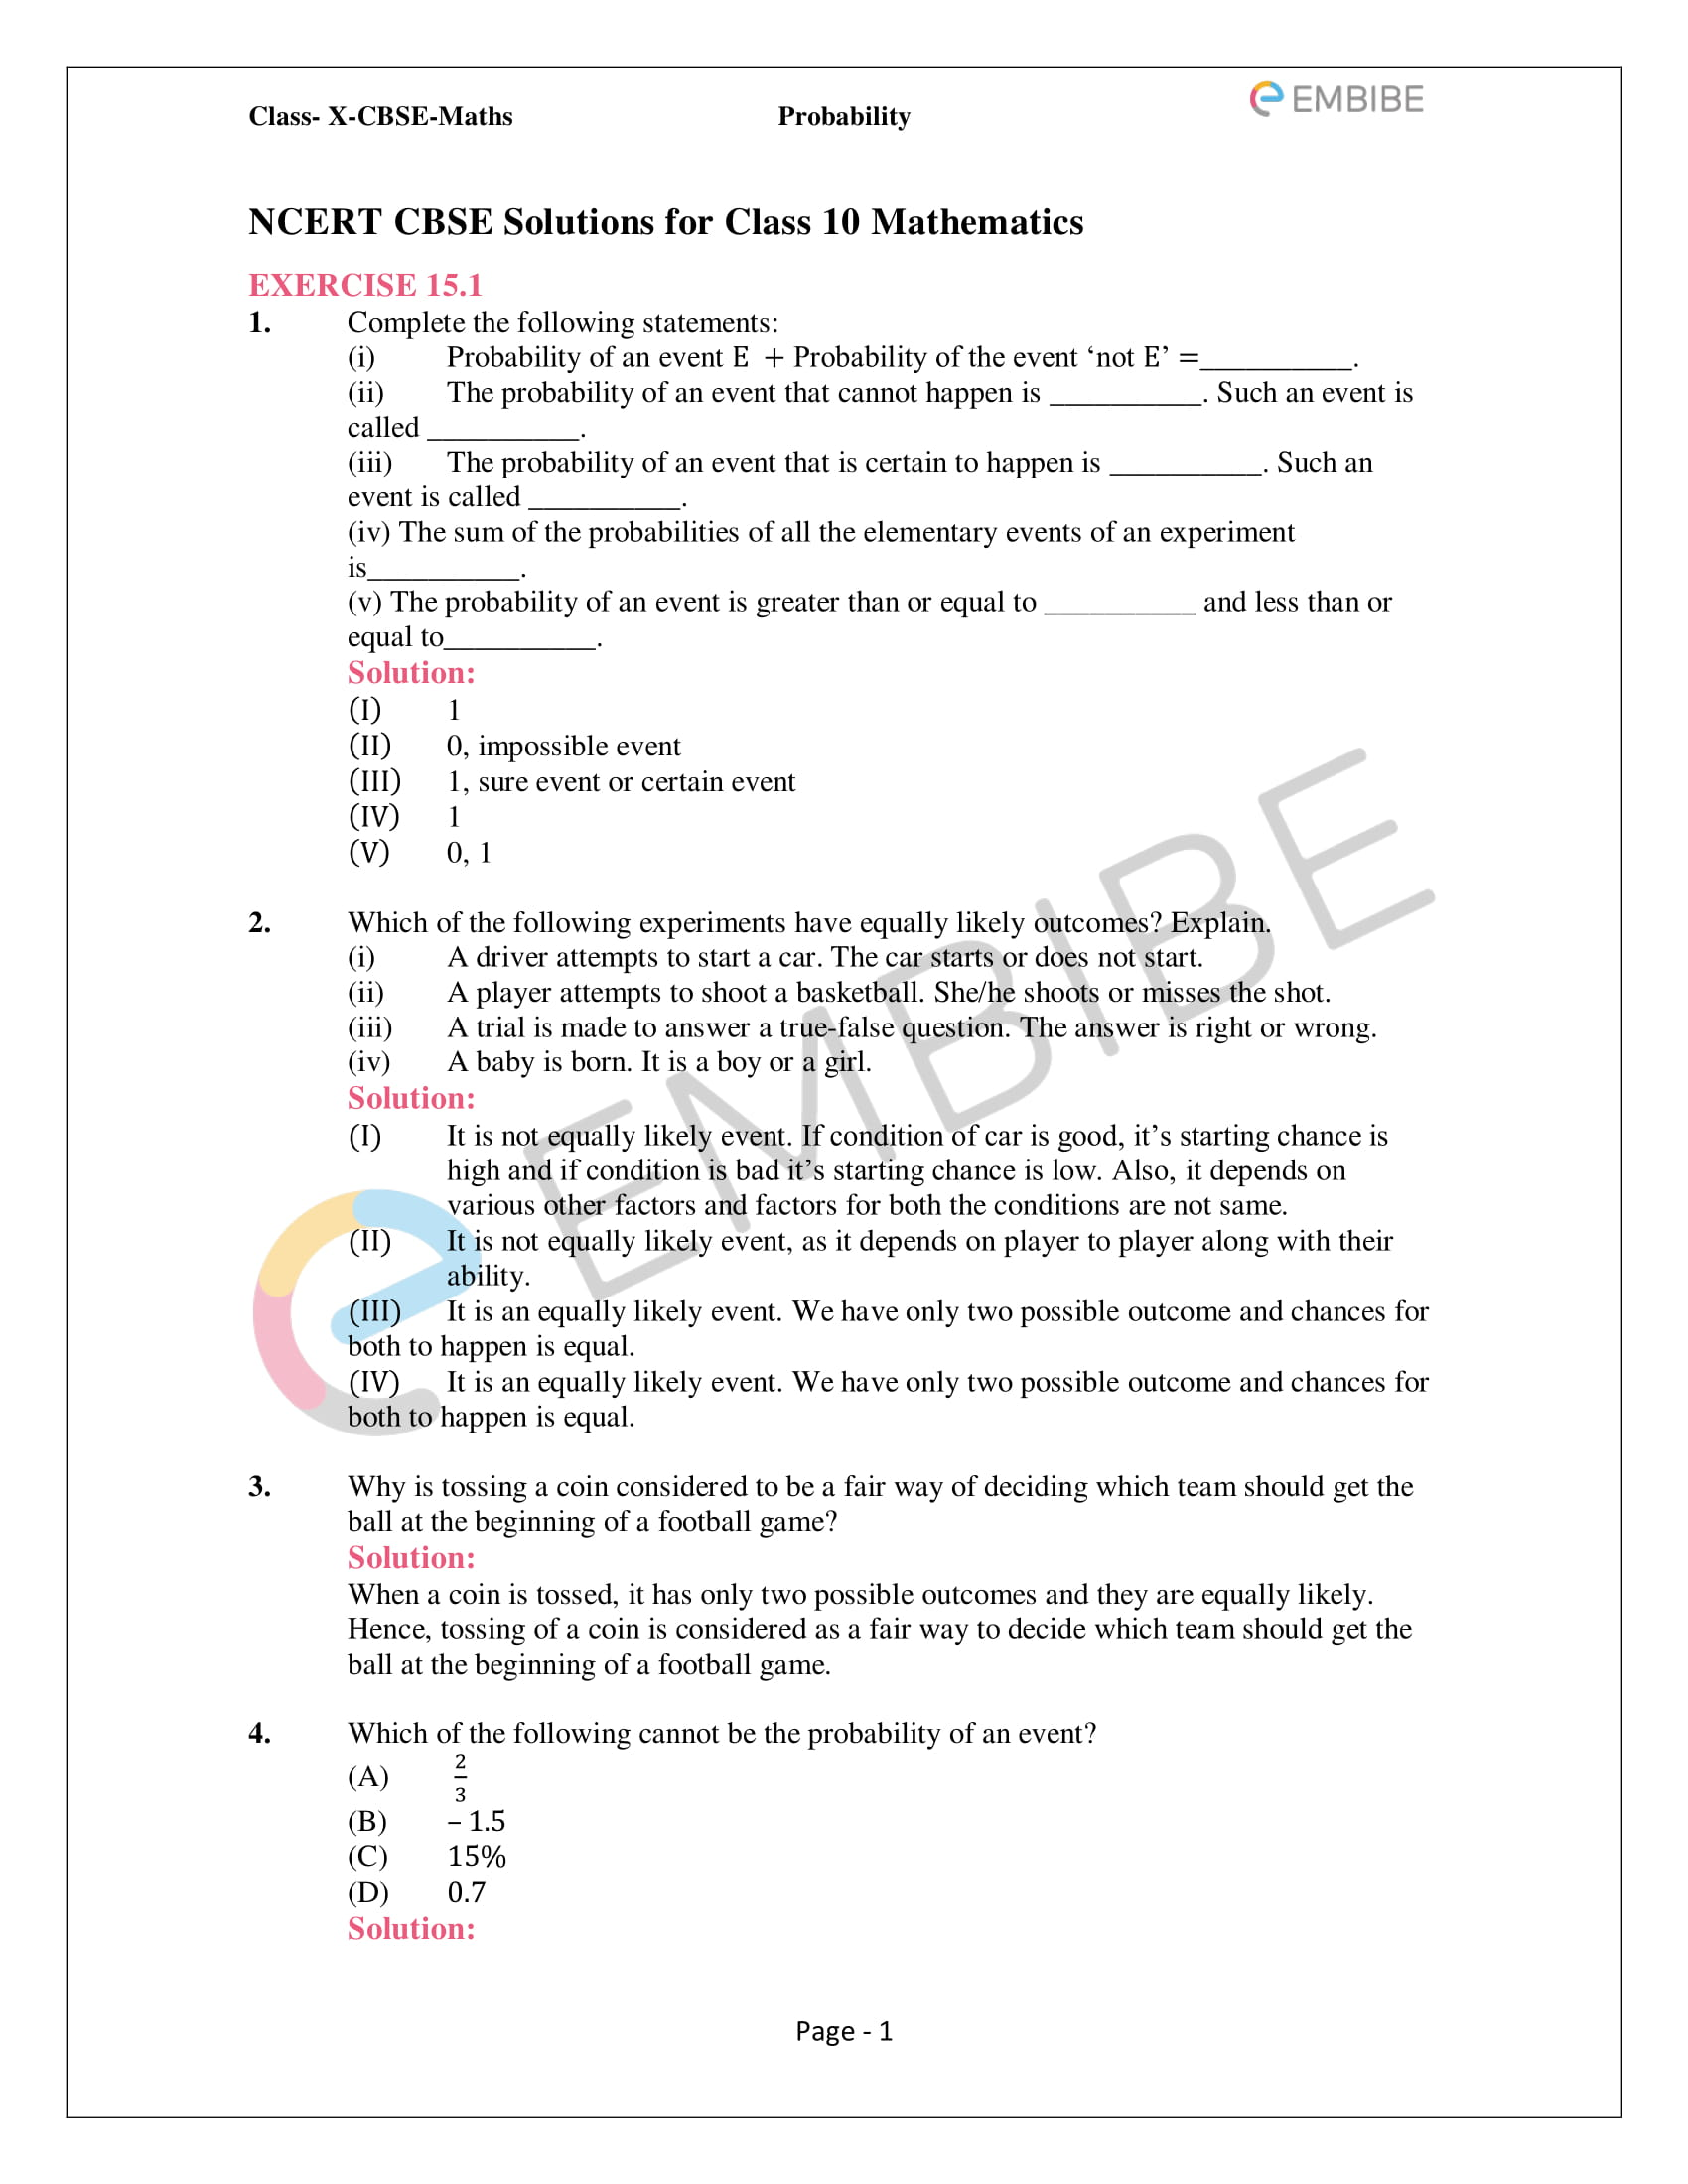 CBSE NCERT Solutions For Class 10 Maths Chapter 15 - Probability - 1